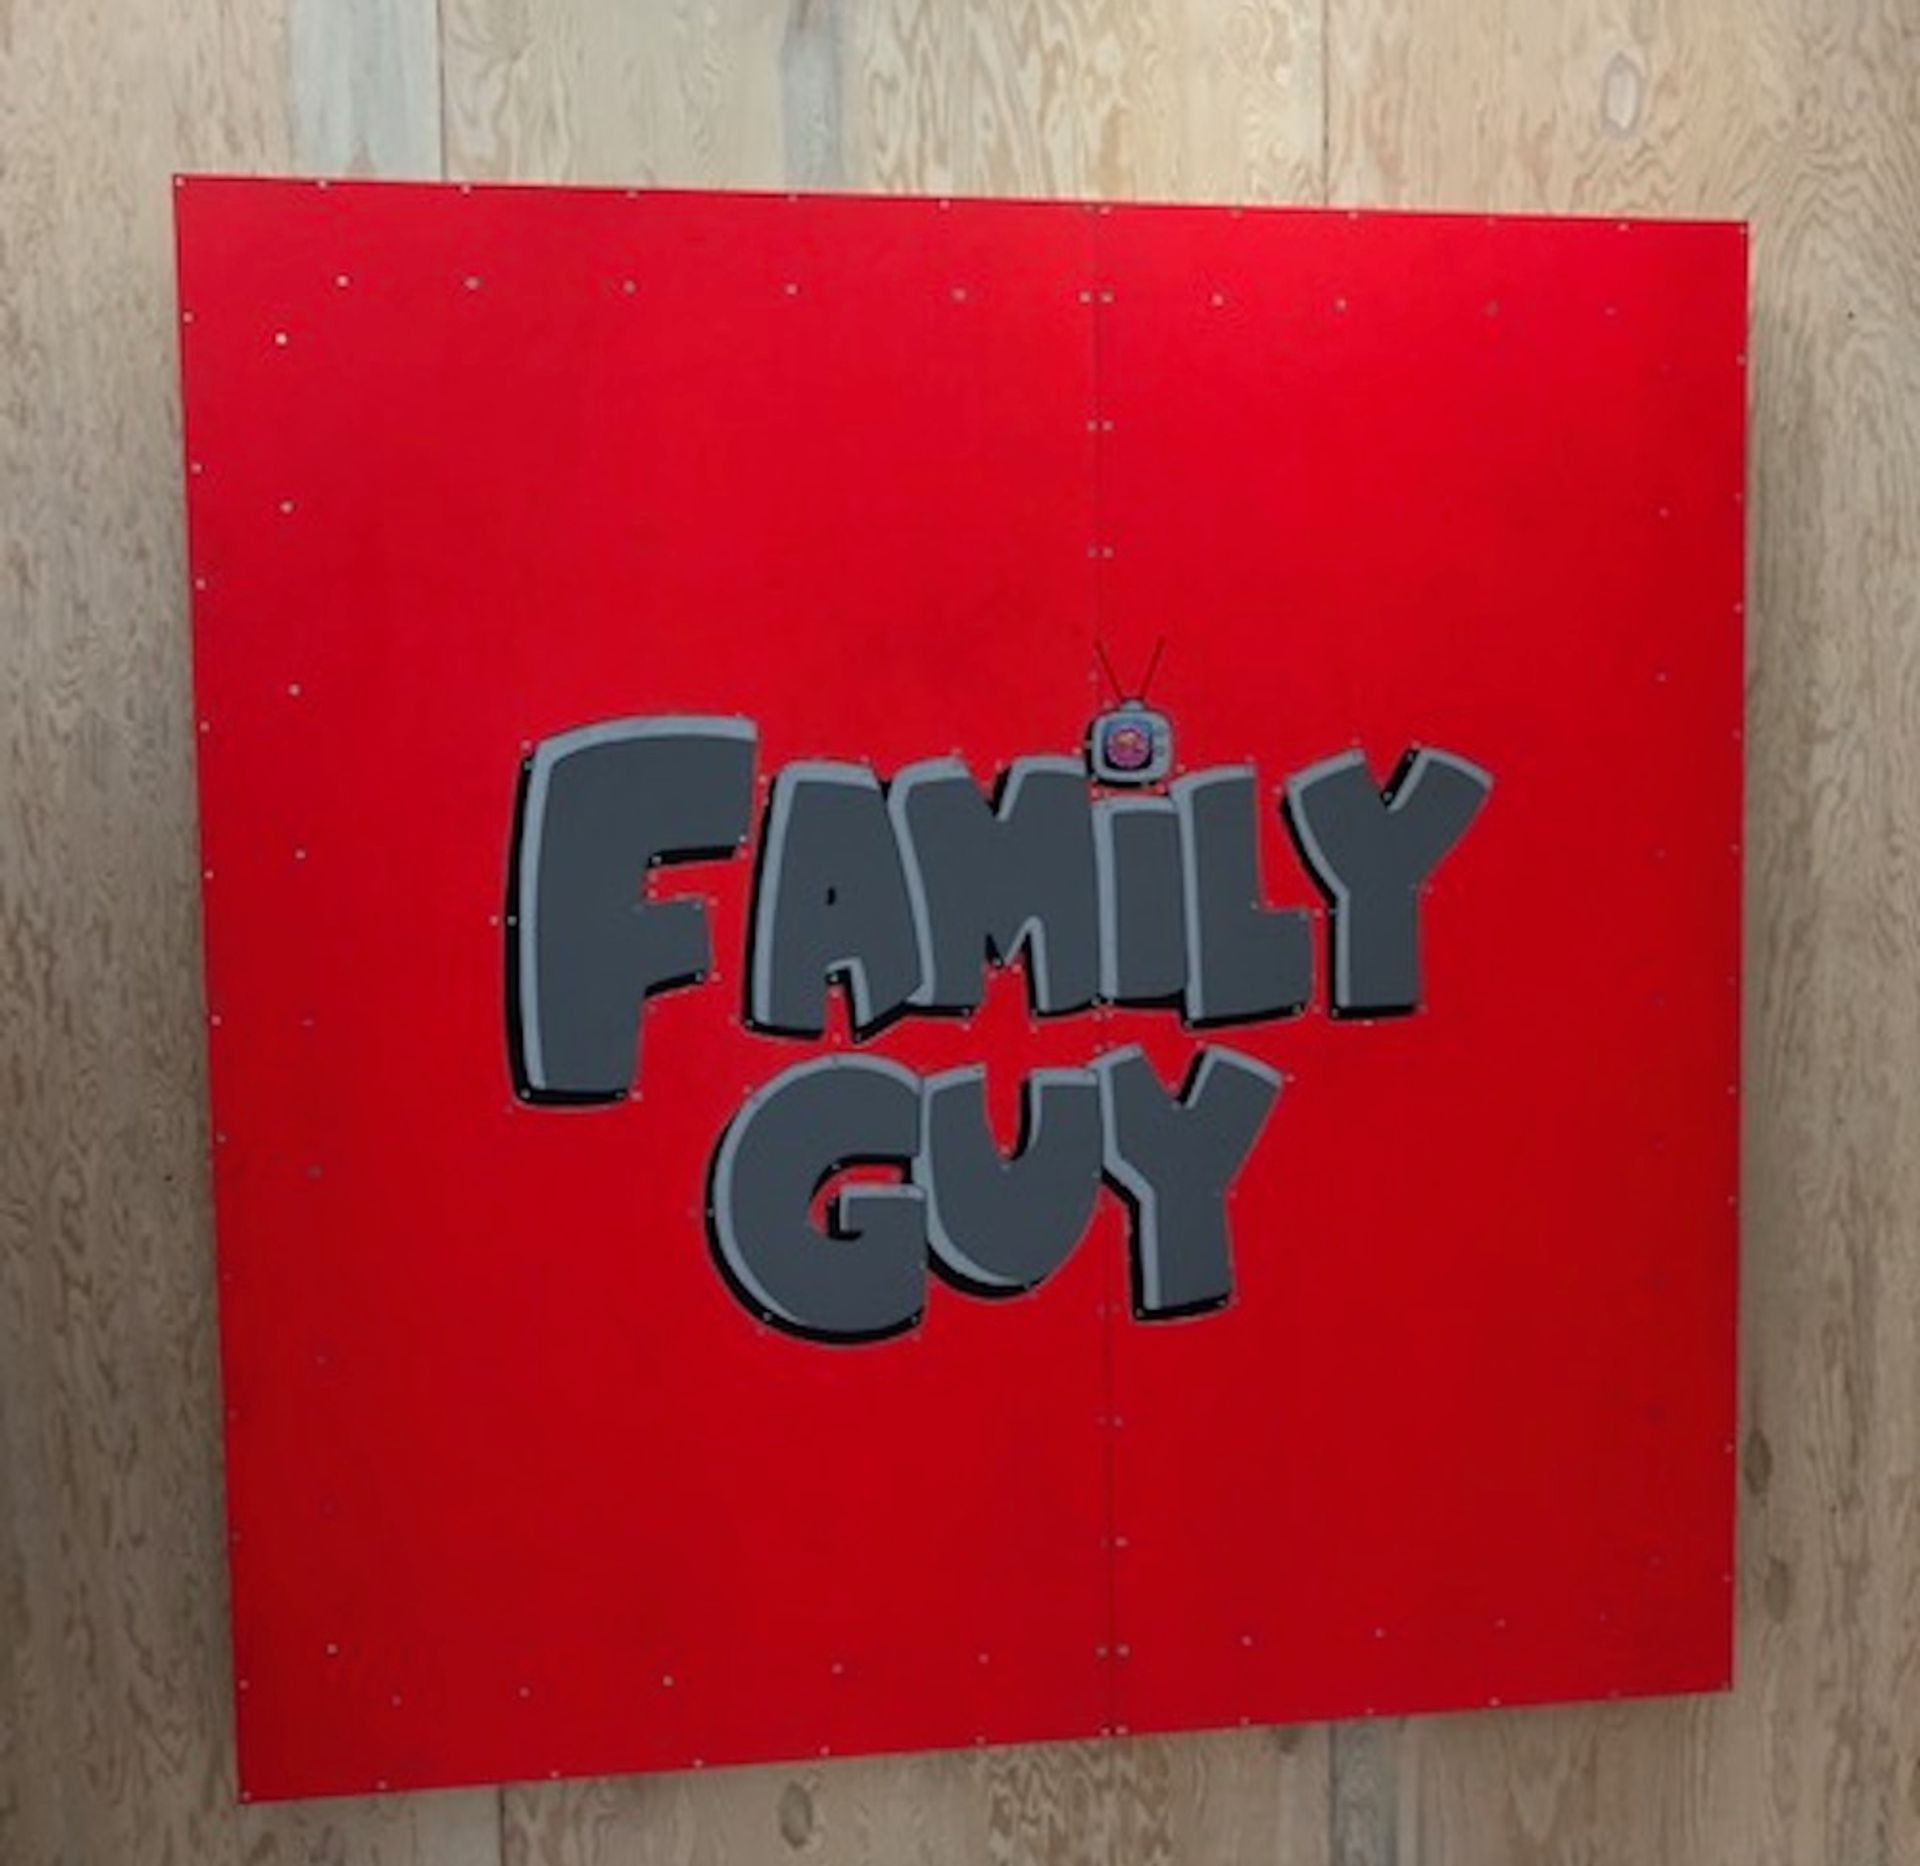 Tom Sachs has used marquetry to pay homage to sitcom Family Guy Gareth Harris